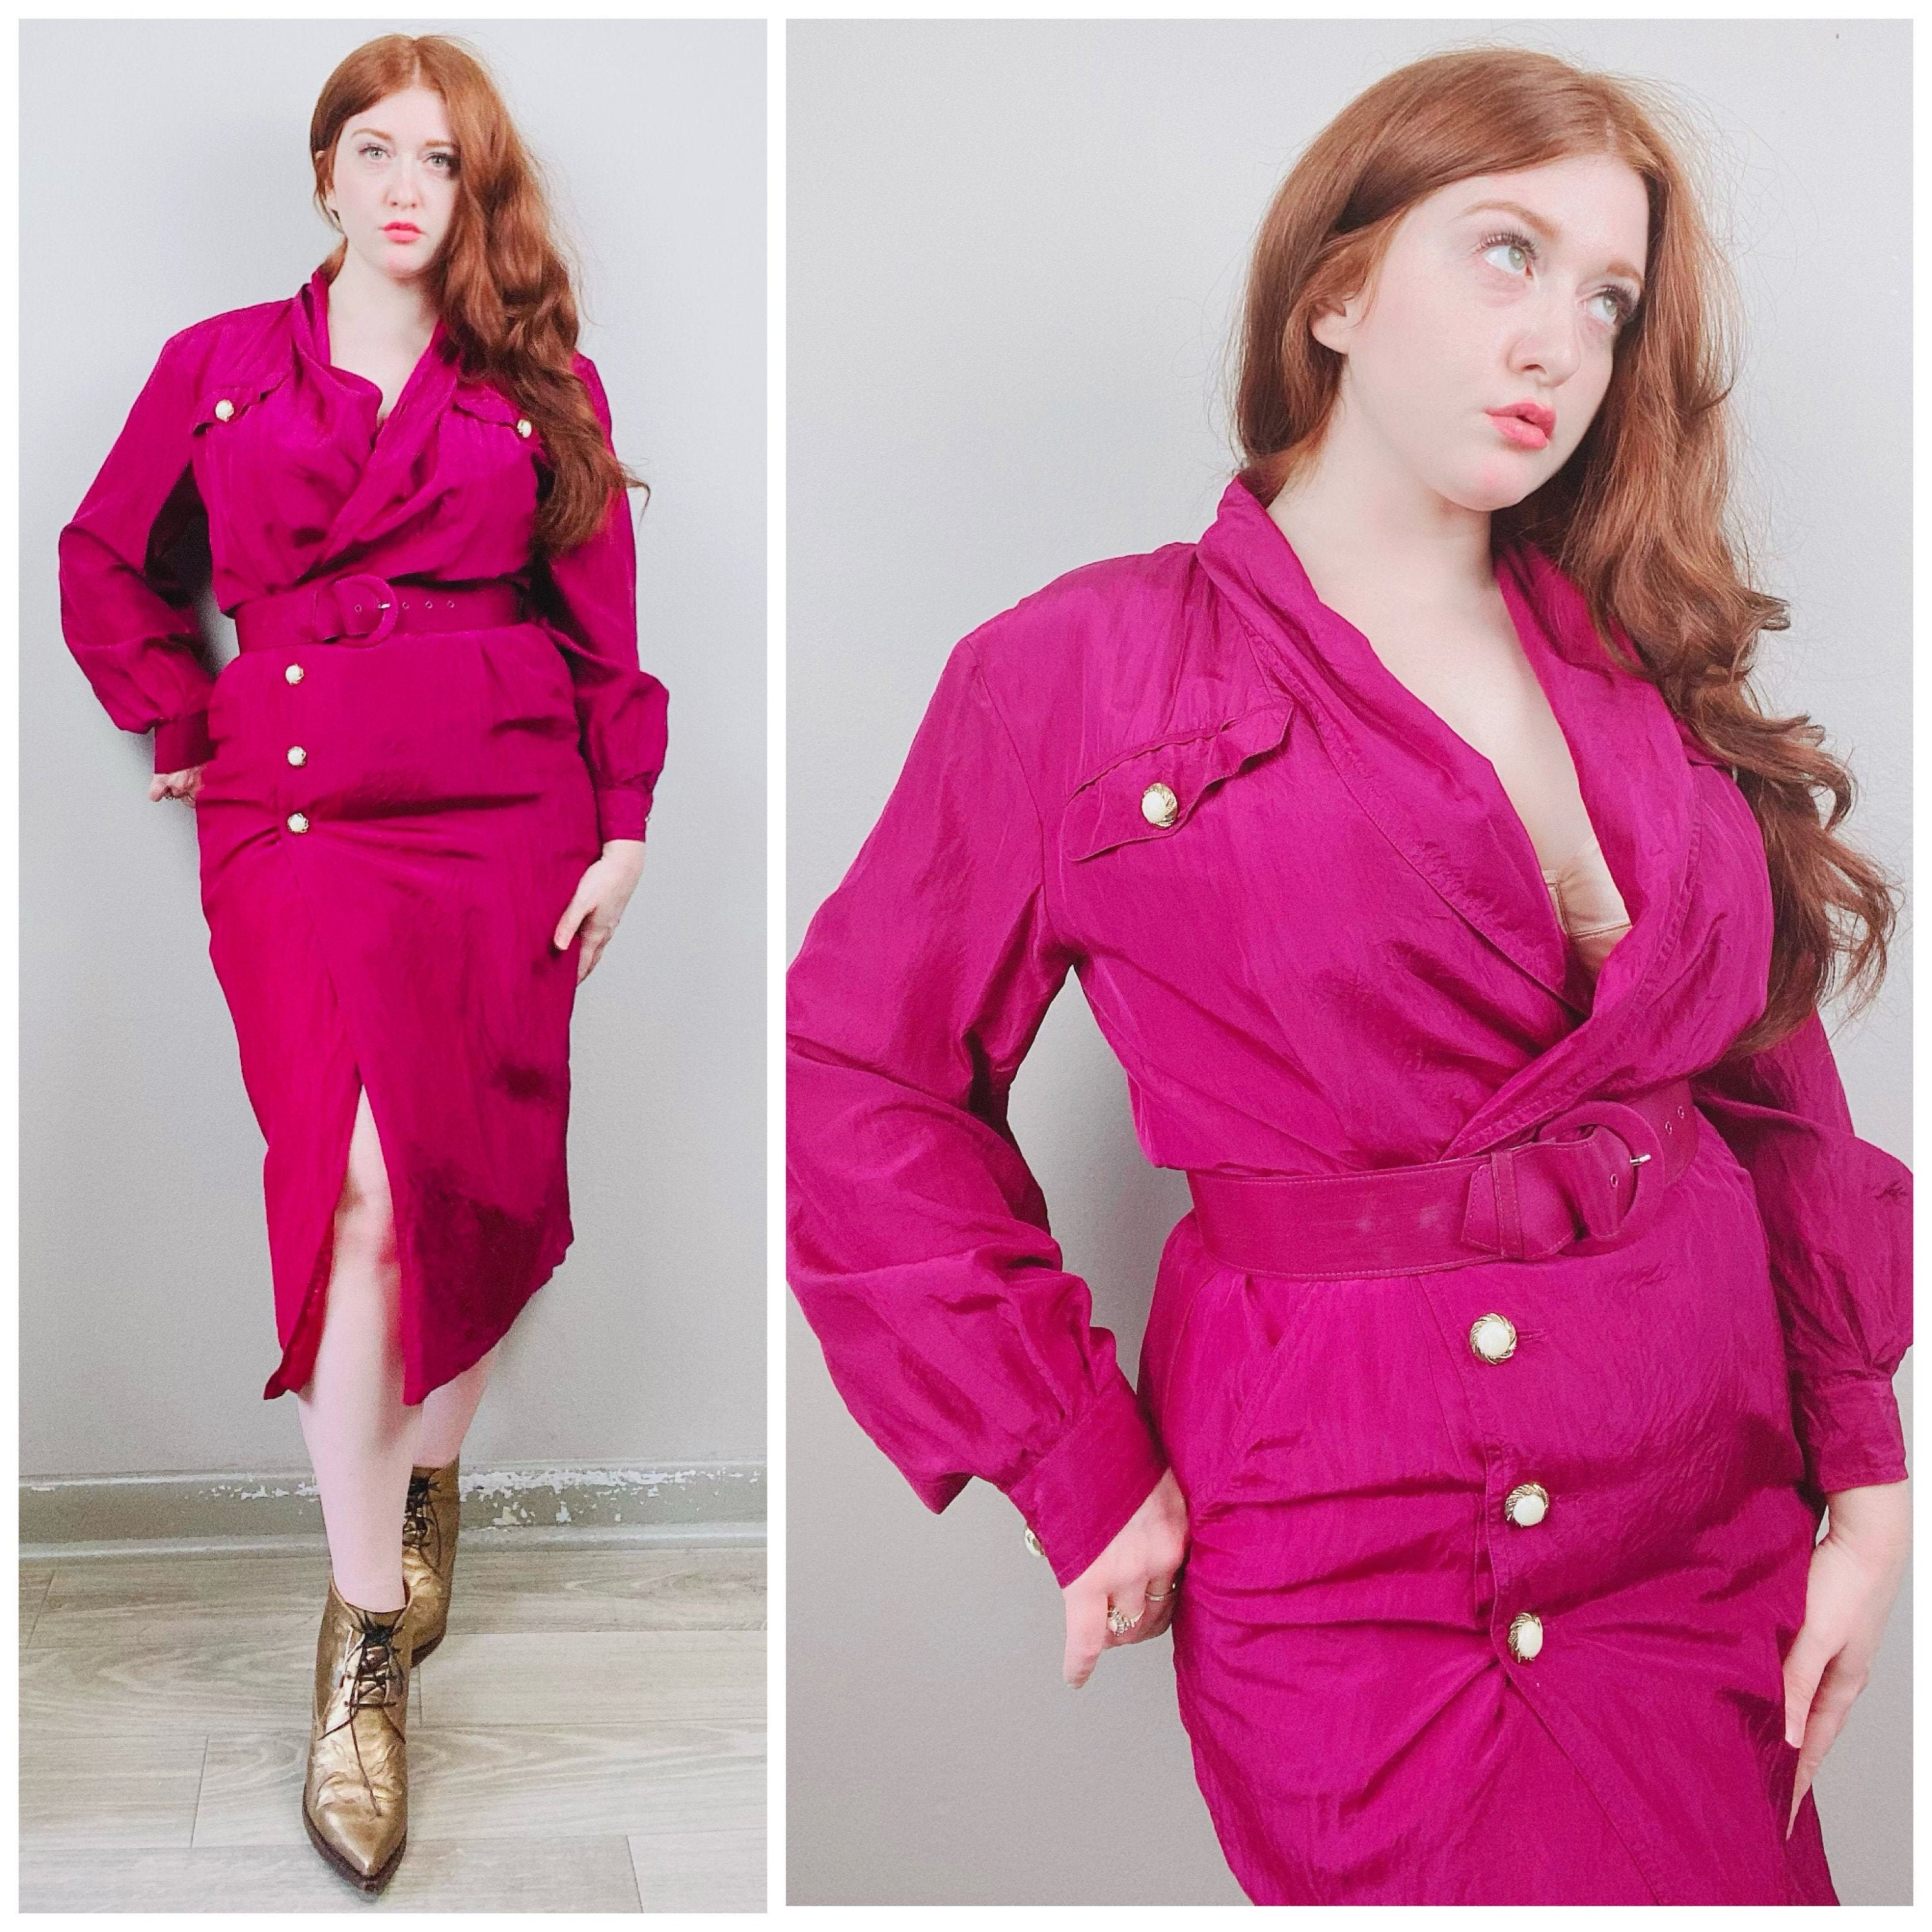 80s Dresses | Casual to Party Dresses 1980S Vintage David Benjamin Silk Purple Wiggle Dress80S Eighties Wrap Long Sleeve Size Large Xl $26.50 AT vintagedancer.com